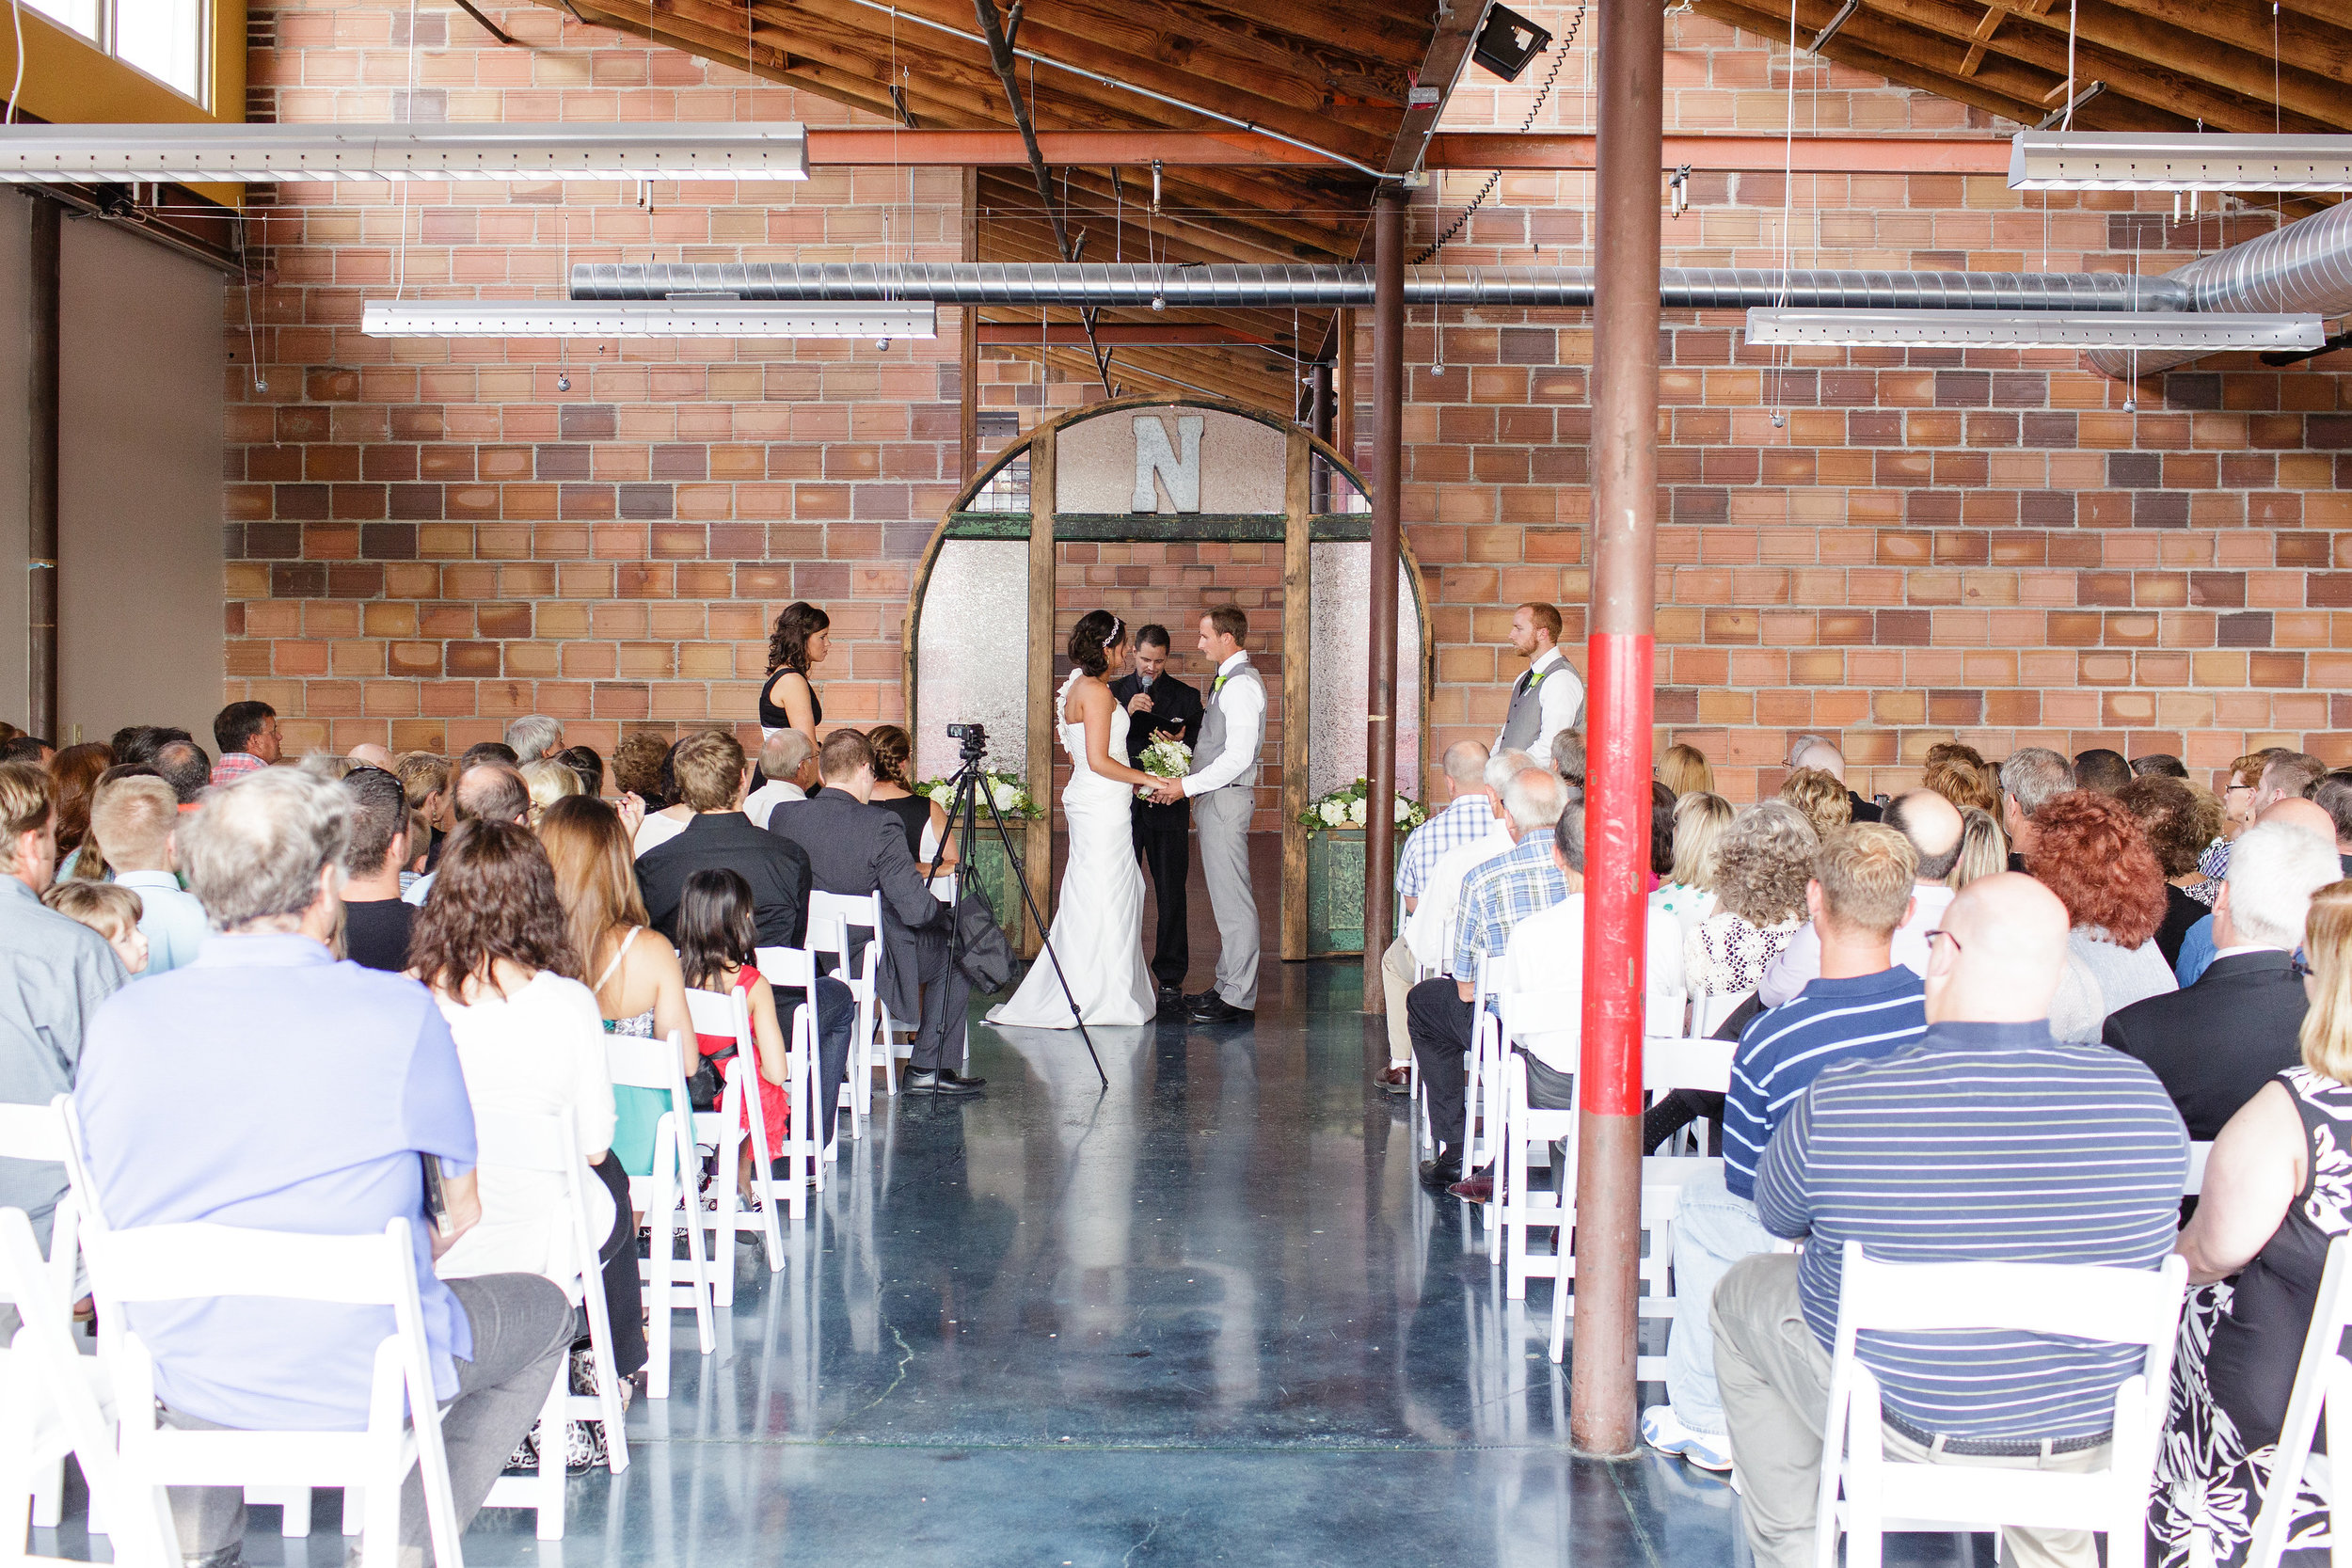 omaha-venue-the-living-room-white-black-downtown-wedding-ceremony-brick-urban-loft